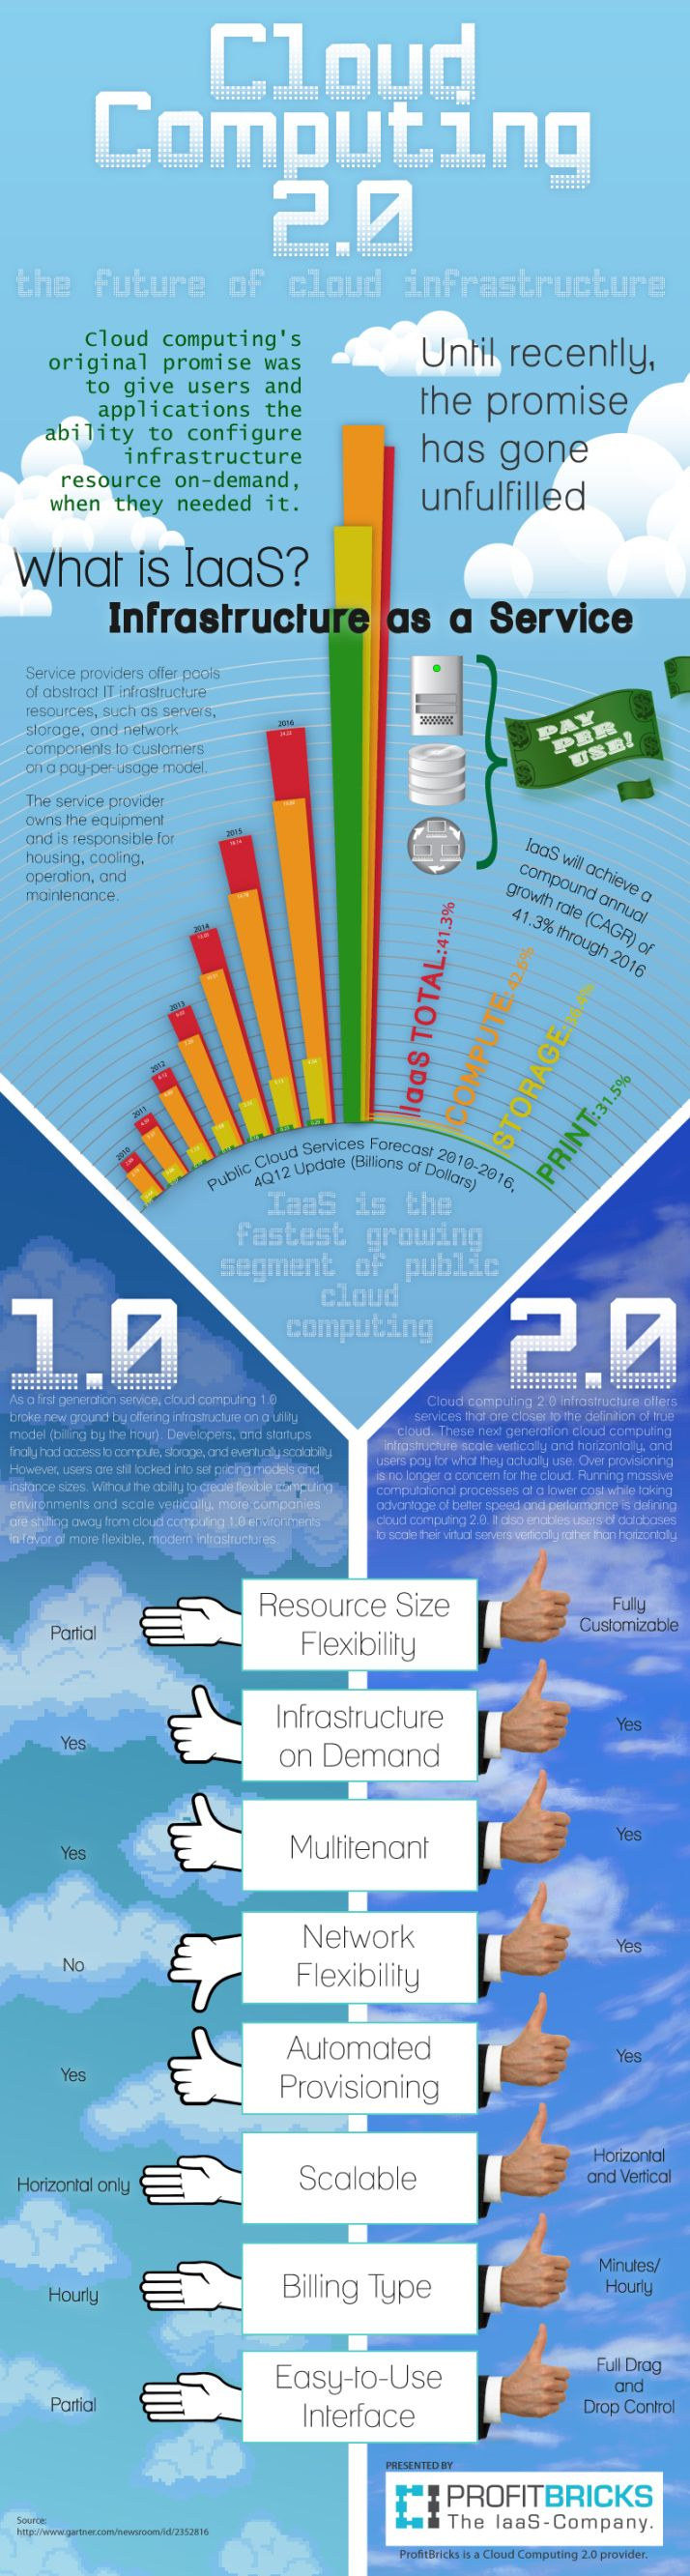 Cloud computing 2.0 #infografia #infographic #internet